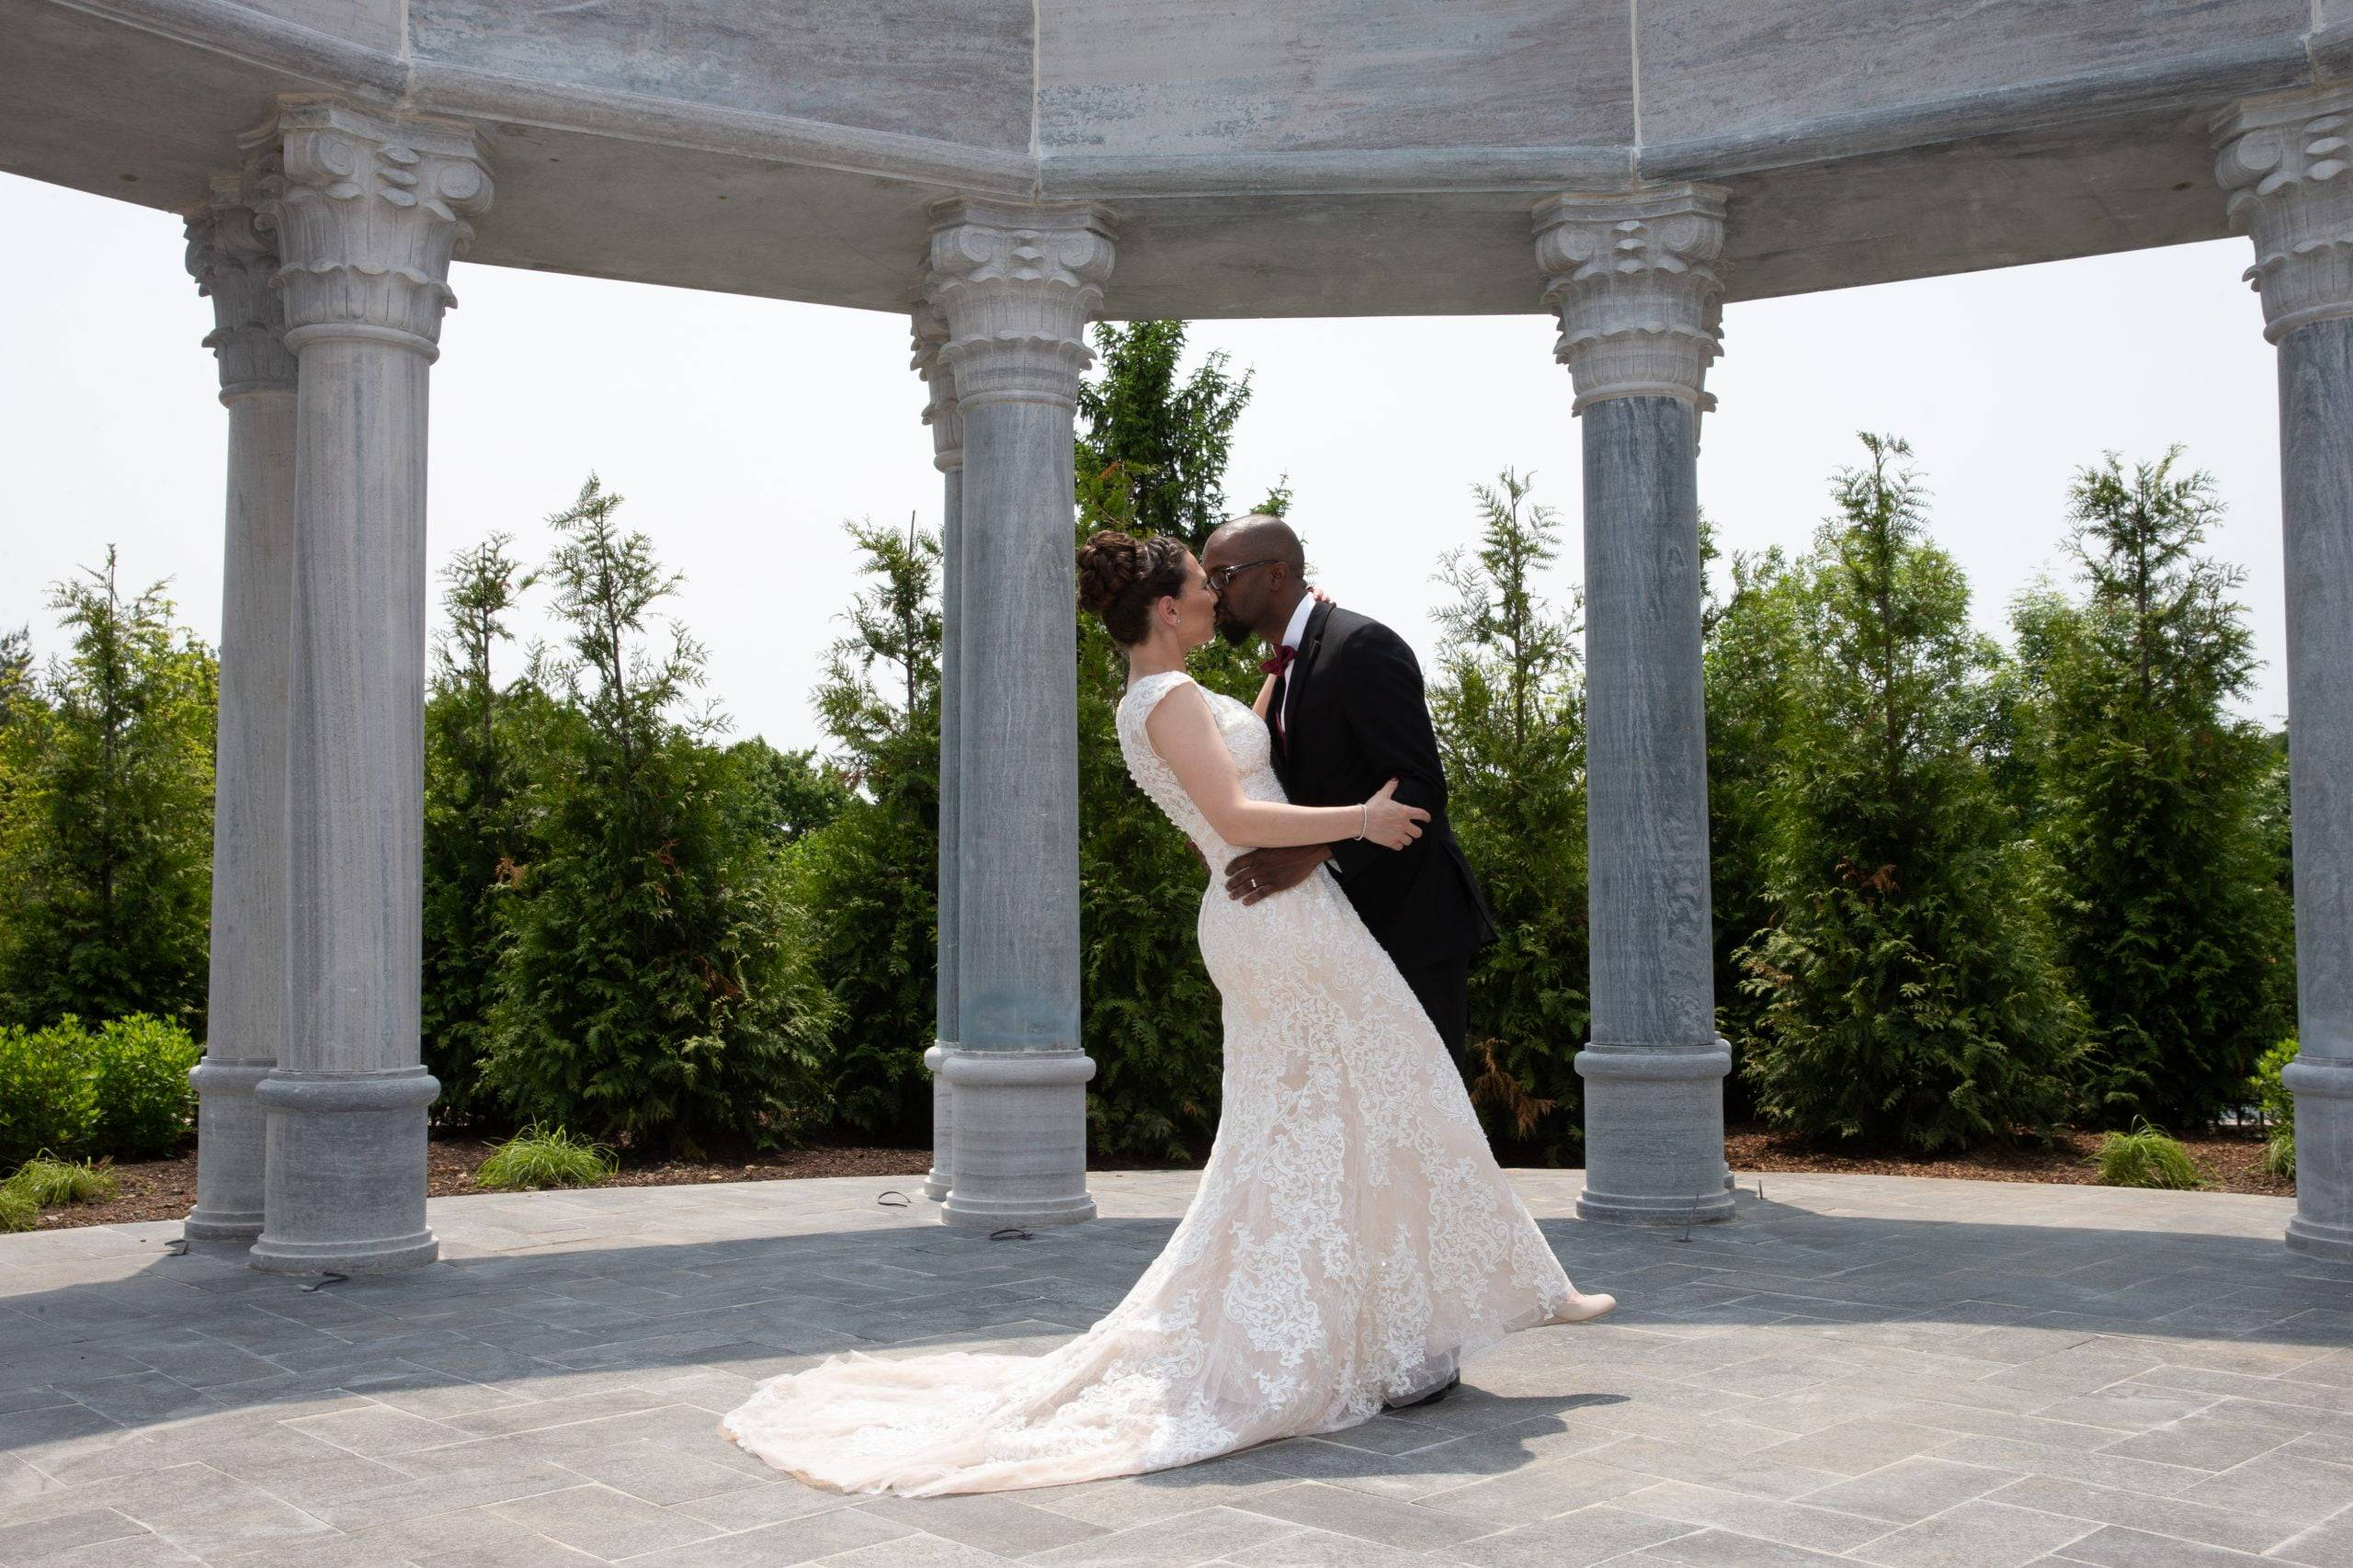 Meadow Wood wedding couple kiss outside by columns